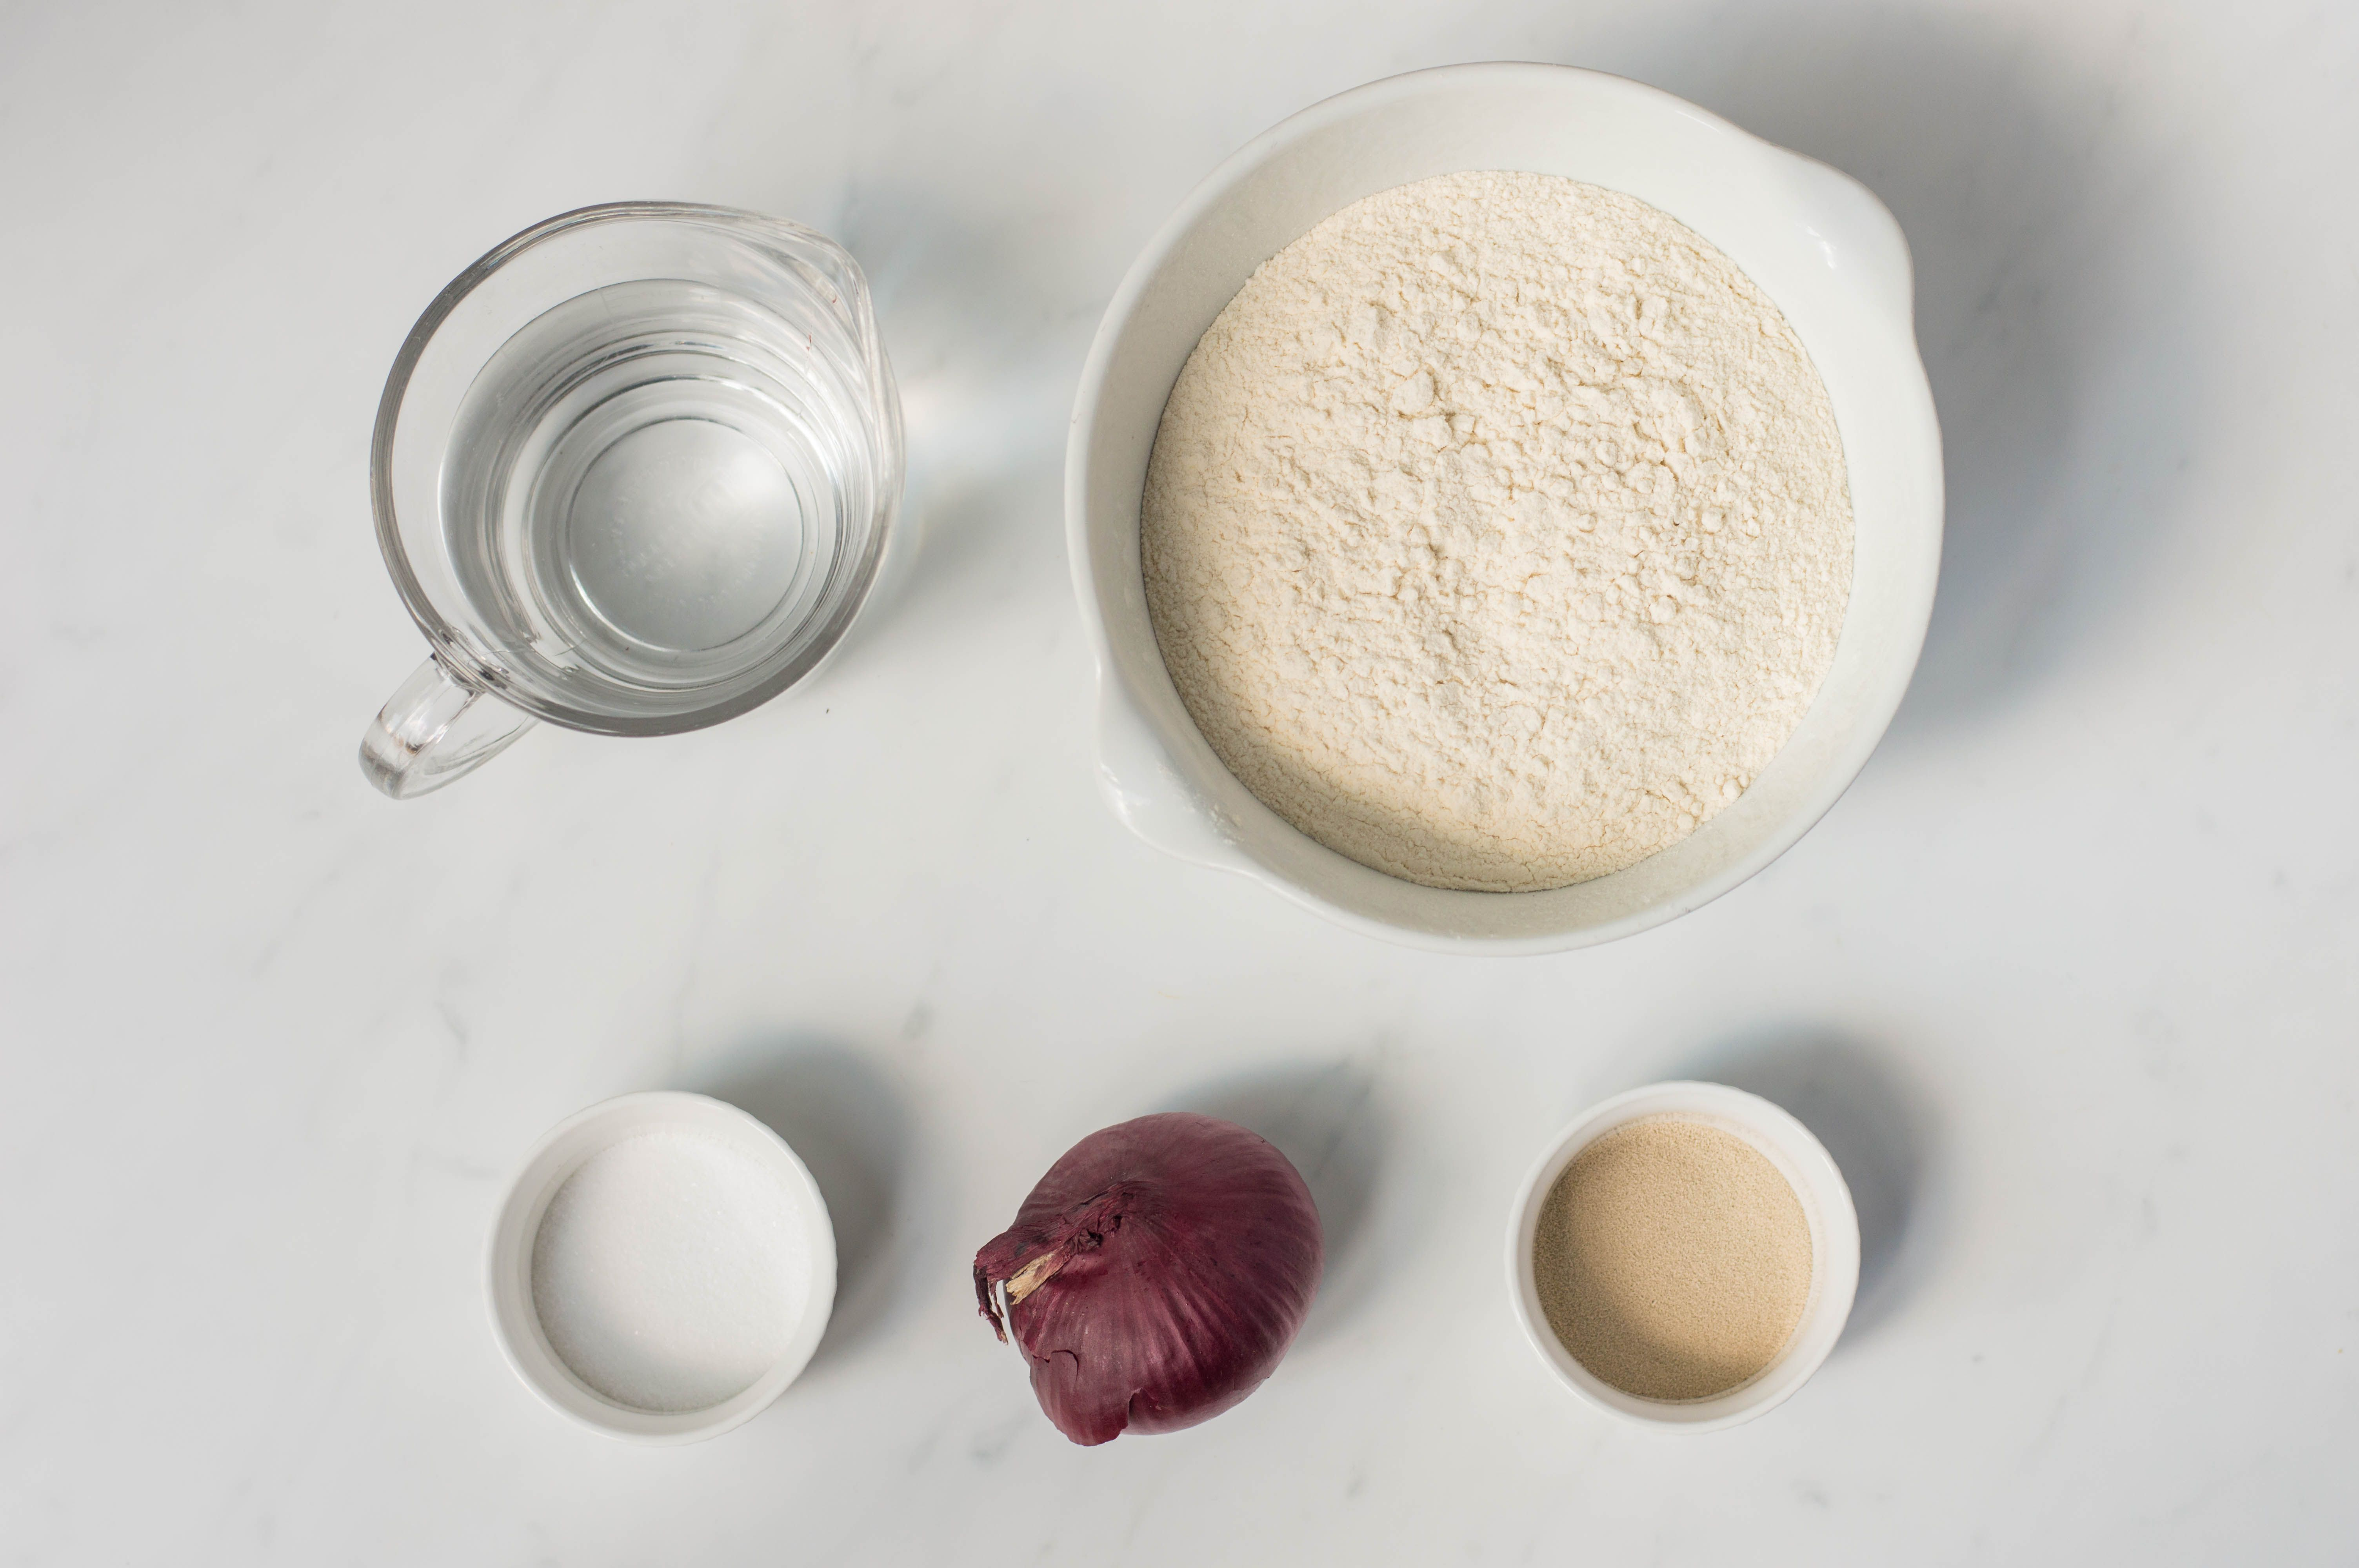 Ingredients for fougasse bread recipe